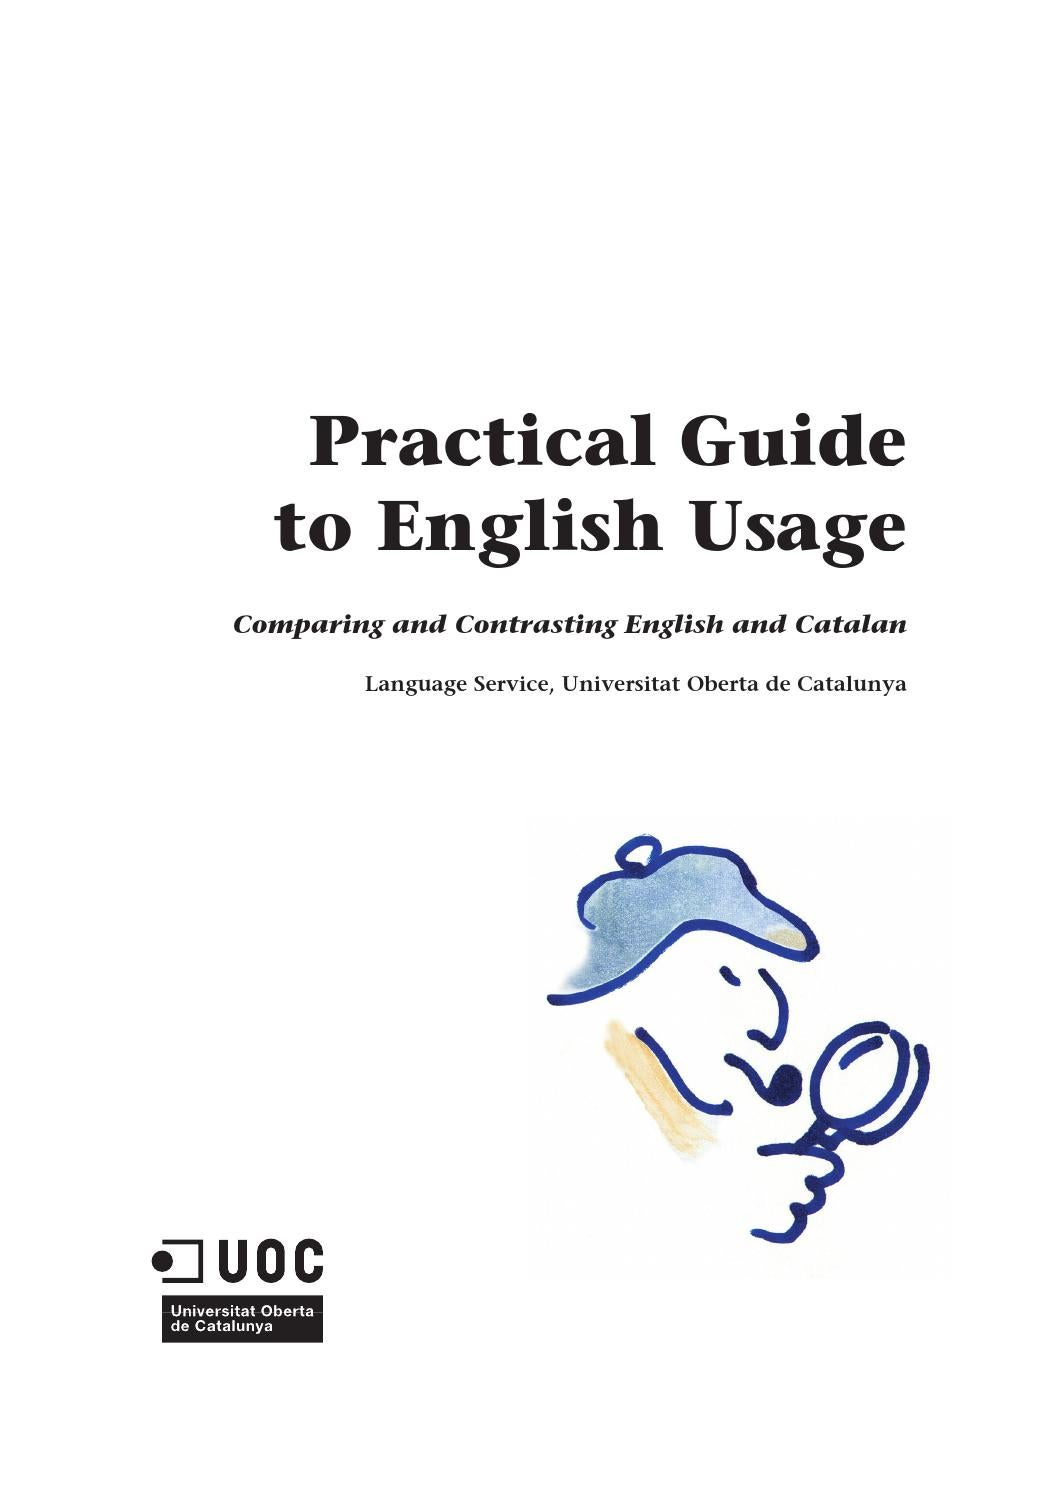 Practical Guide in English Usage (UOC) by UOC (Universitat Oberta de ...